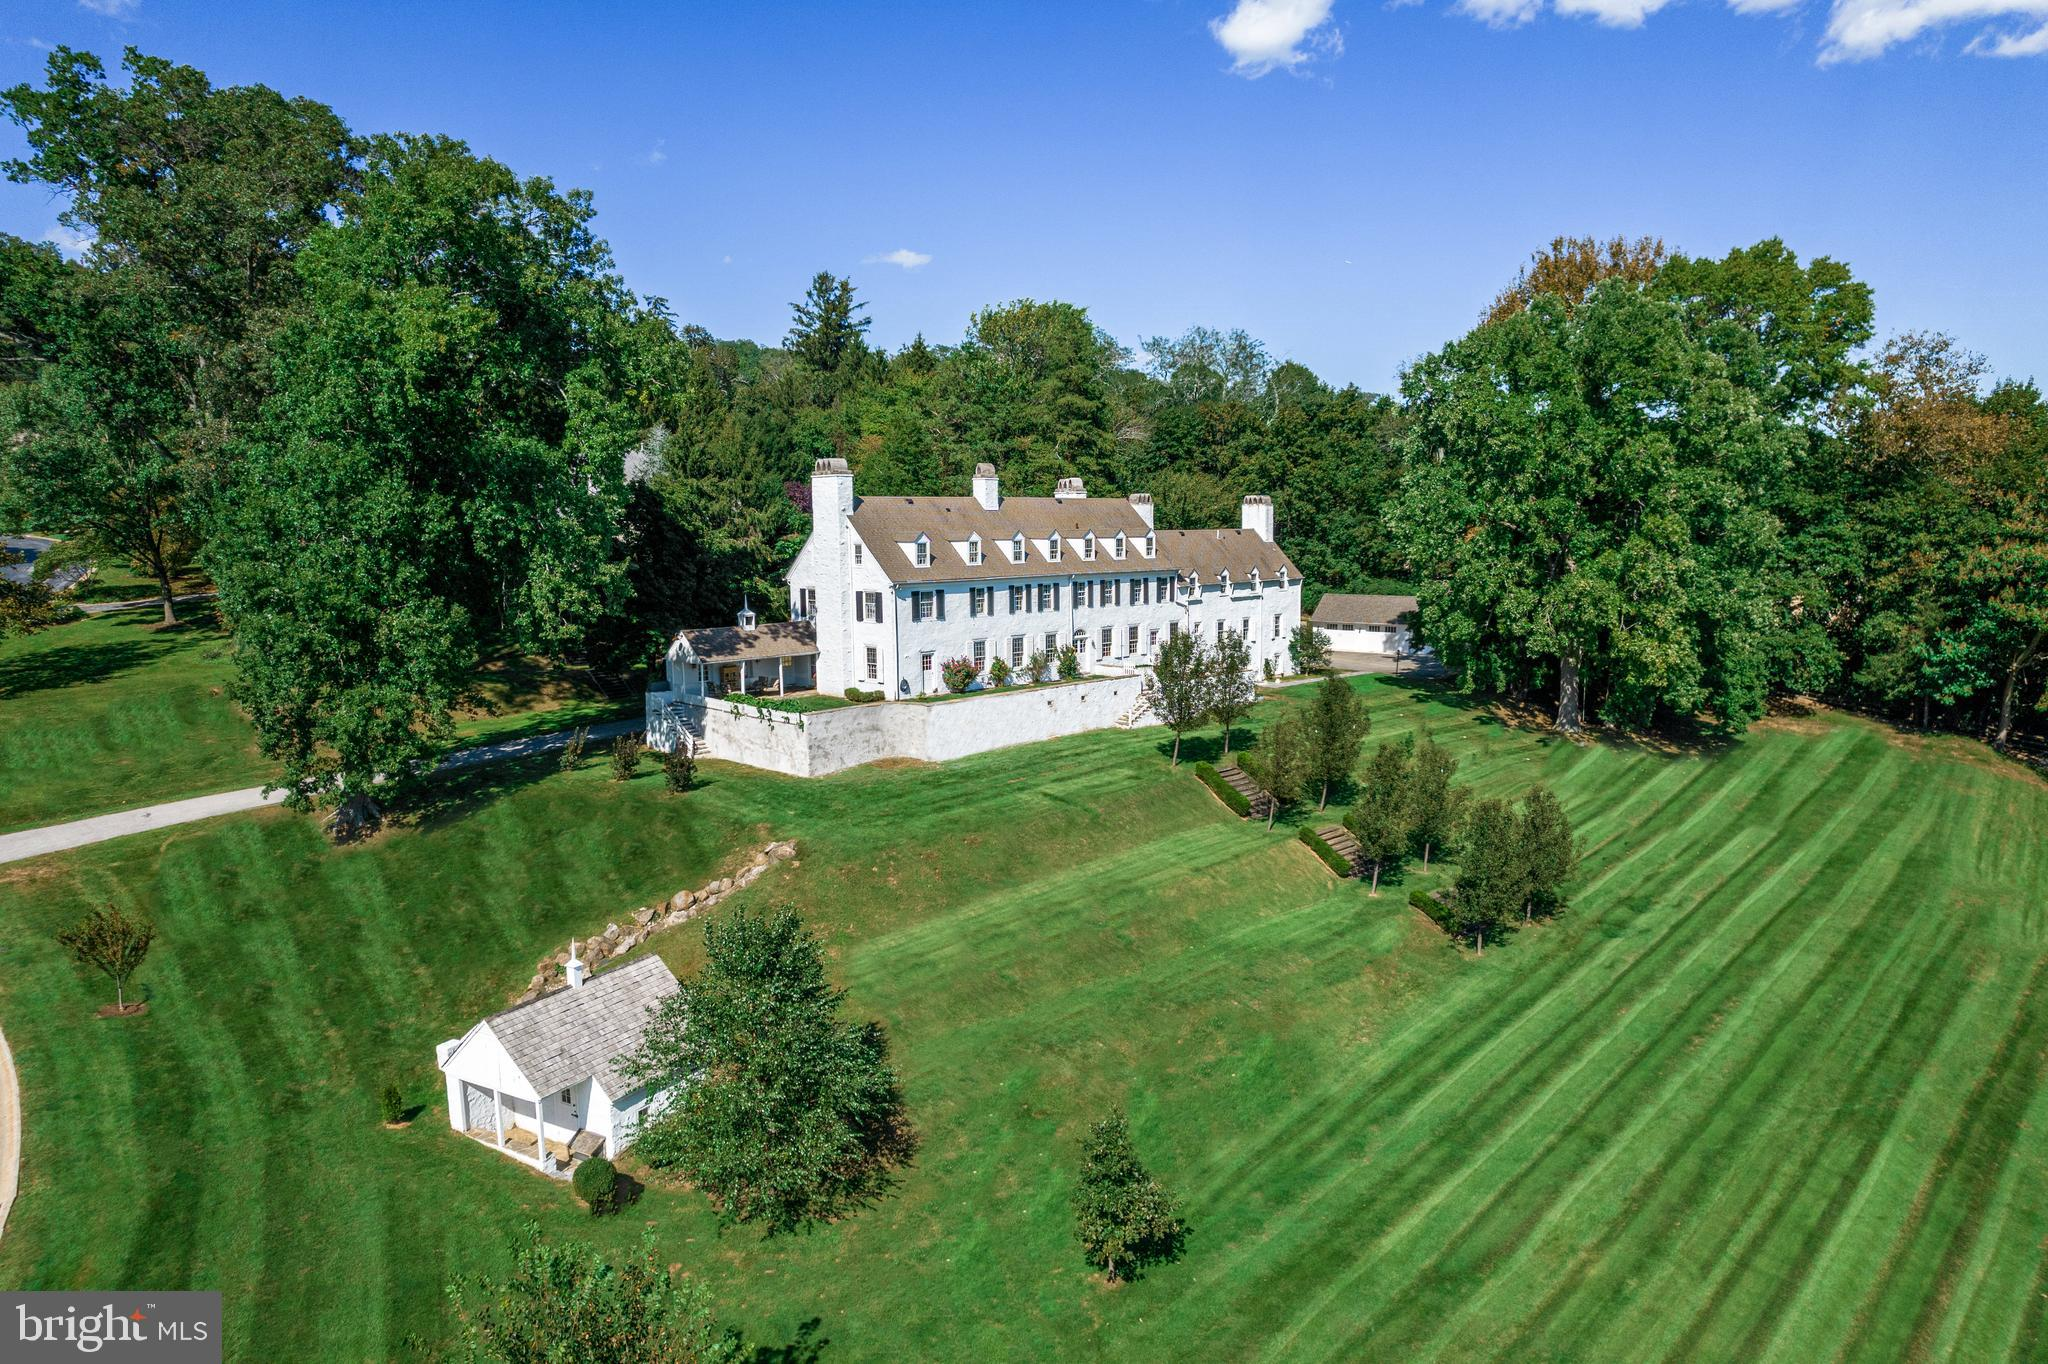 This meticulously updated Colonial Revival gem originally built in the late 18th century and expanded in 1927 by renowned architect R. Brognard Okie is set on a breathtaking 2.5-acre private lot with a terraced lawn and endless views of Gulph Creek and beyond.  Formerly the manor house of Woodstock, the Van Pelt estate at Radnor, it offers over 8000 square feet of living space above grade, complete with the original features installed by Okie, plaster on stone construction, eighteen-inch-thick stone walls, solid wood shutters, root cellar, spring house, and a recently built oversized 4-car garage.  With over 100 feet of linear southern exposure, the home boasts gracious sun-filled rooms that flow seamlessly into one another, perfect for entertaining, each space offering large deep-set windows, with two sets of French doors and four additional 16-lite doors leading to multiple terraces and extensive views.  High ceilings, beautifully restored original random width pegged floors, incredible millwork, 11 dramatic fireplaces, solid wood interior doors, wrought iron hardware, stunning craftsmanship including Okie designed built-ins and customized expanded spaces throughout the residence hint at the grandeur of yesteryear but perfectly suit today's lifestyles.  Recent improvements by the current owners include updated systems, plumbing, HVAC and electric.  On the ground floor, you will find an entry suitable for welcoming guests in the style of a by-gone era, a cavernous view of the handcrafted three-story staircase, a powder room, generously sized game room, dining hall with formal lounge, and a fabulously renovated gourmet kitchen with enormous walk-in pantry and service staircase.  From the formal entry, ascend the main staircase to a landing area complete with French doors to the library and four separate custom suites.  The primary suite occupies the west wing and offers privacy from the remaining rooms, with a newly renovated luxuriously appointed bath and walk-in d